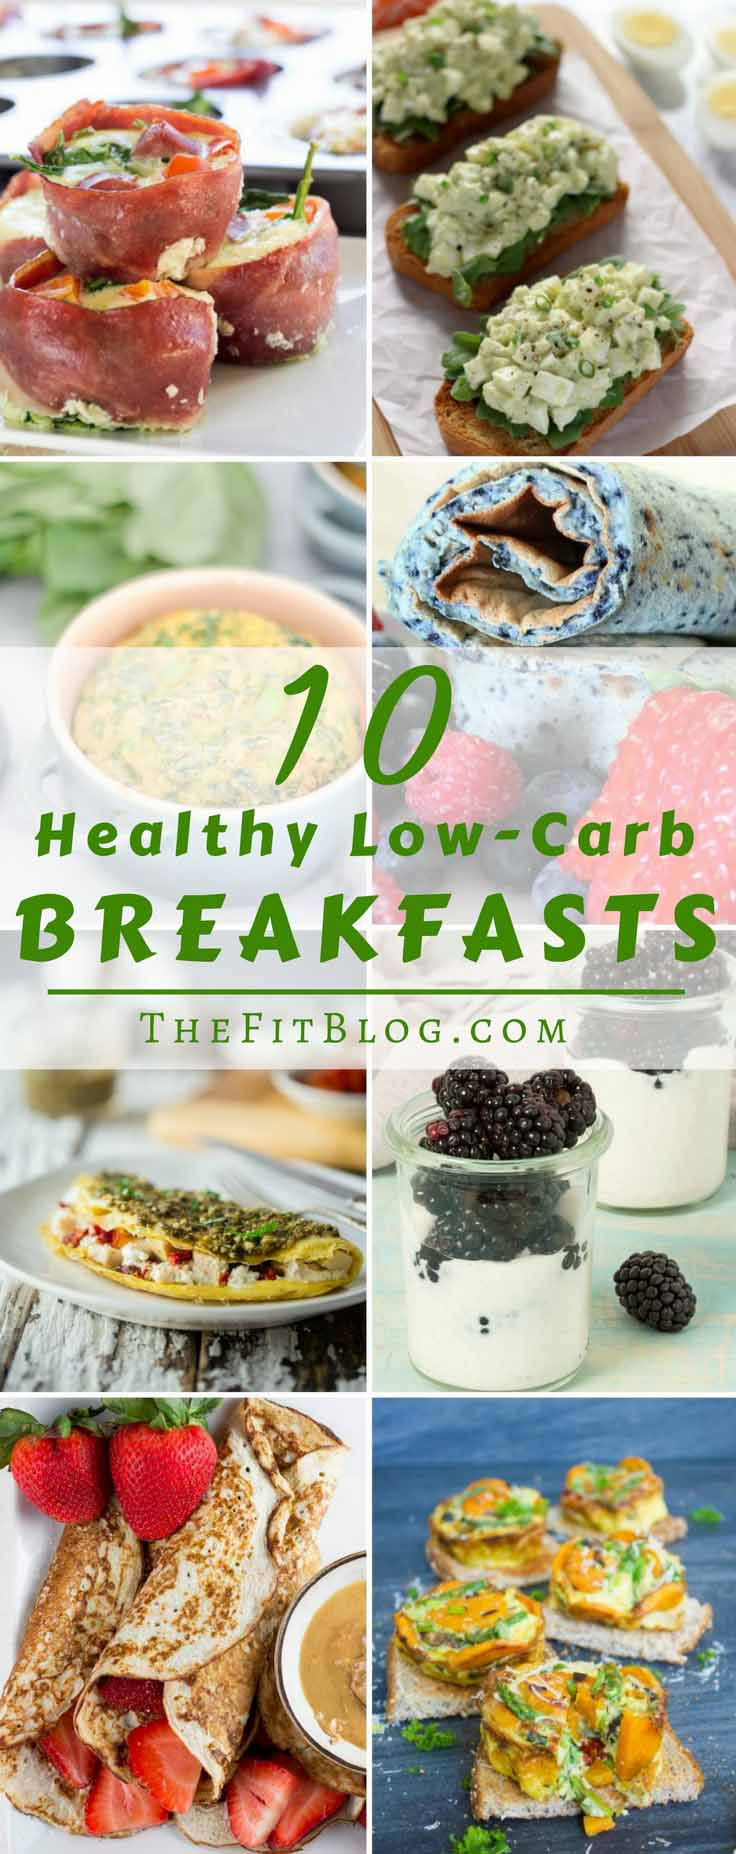 Low Carb Healthy Breakfast  10 Healthy Low Carb Breakfast Recipes